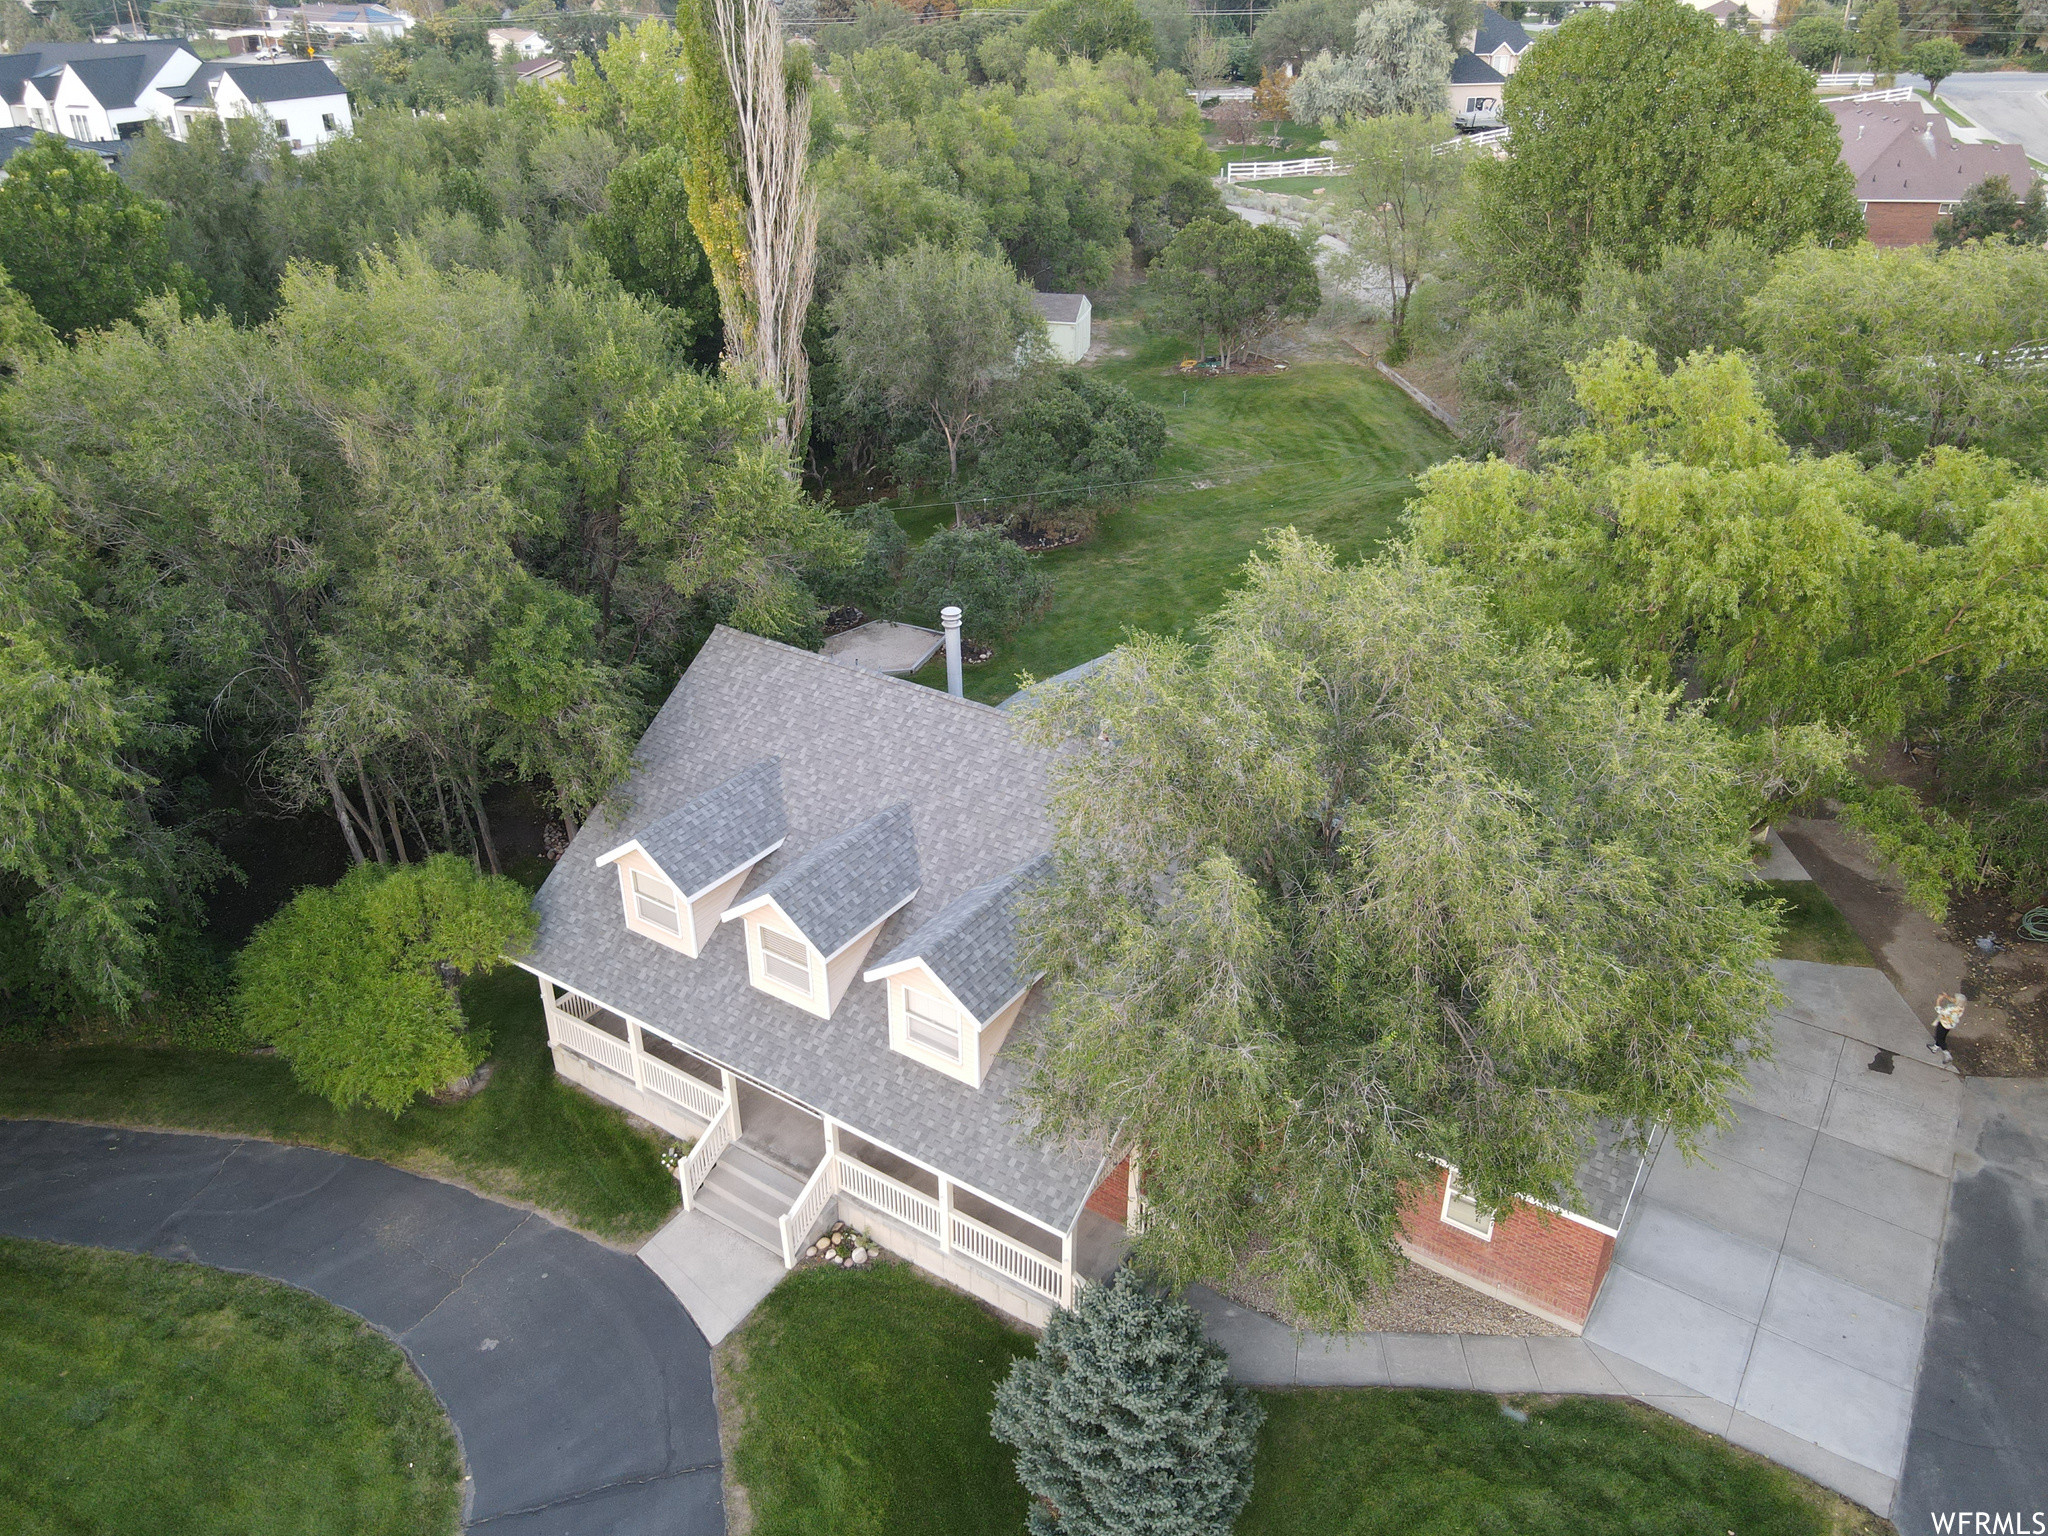 5-Bedroom House In Corner Canyon